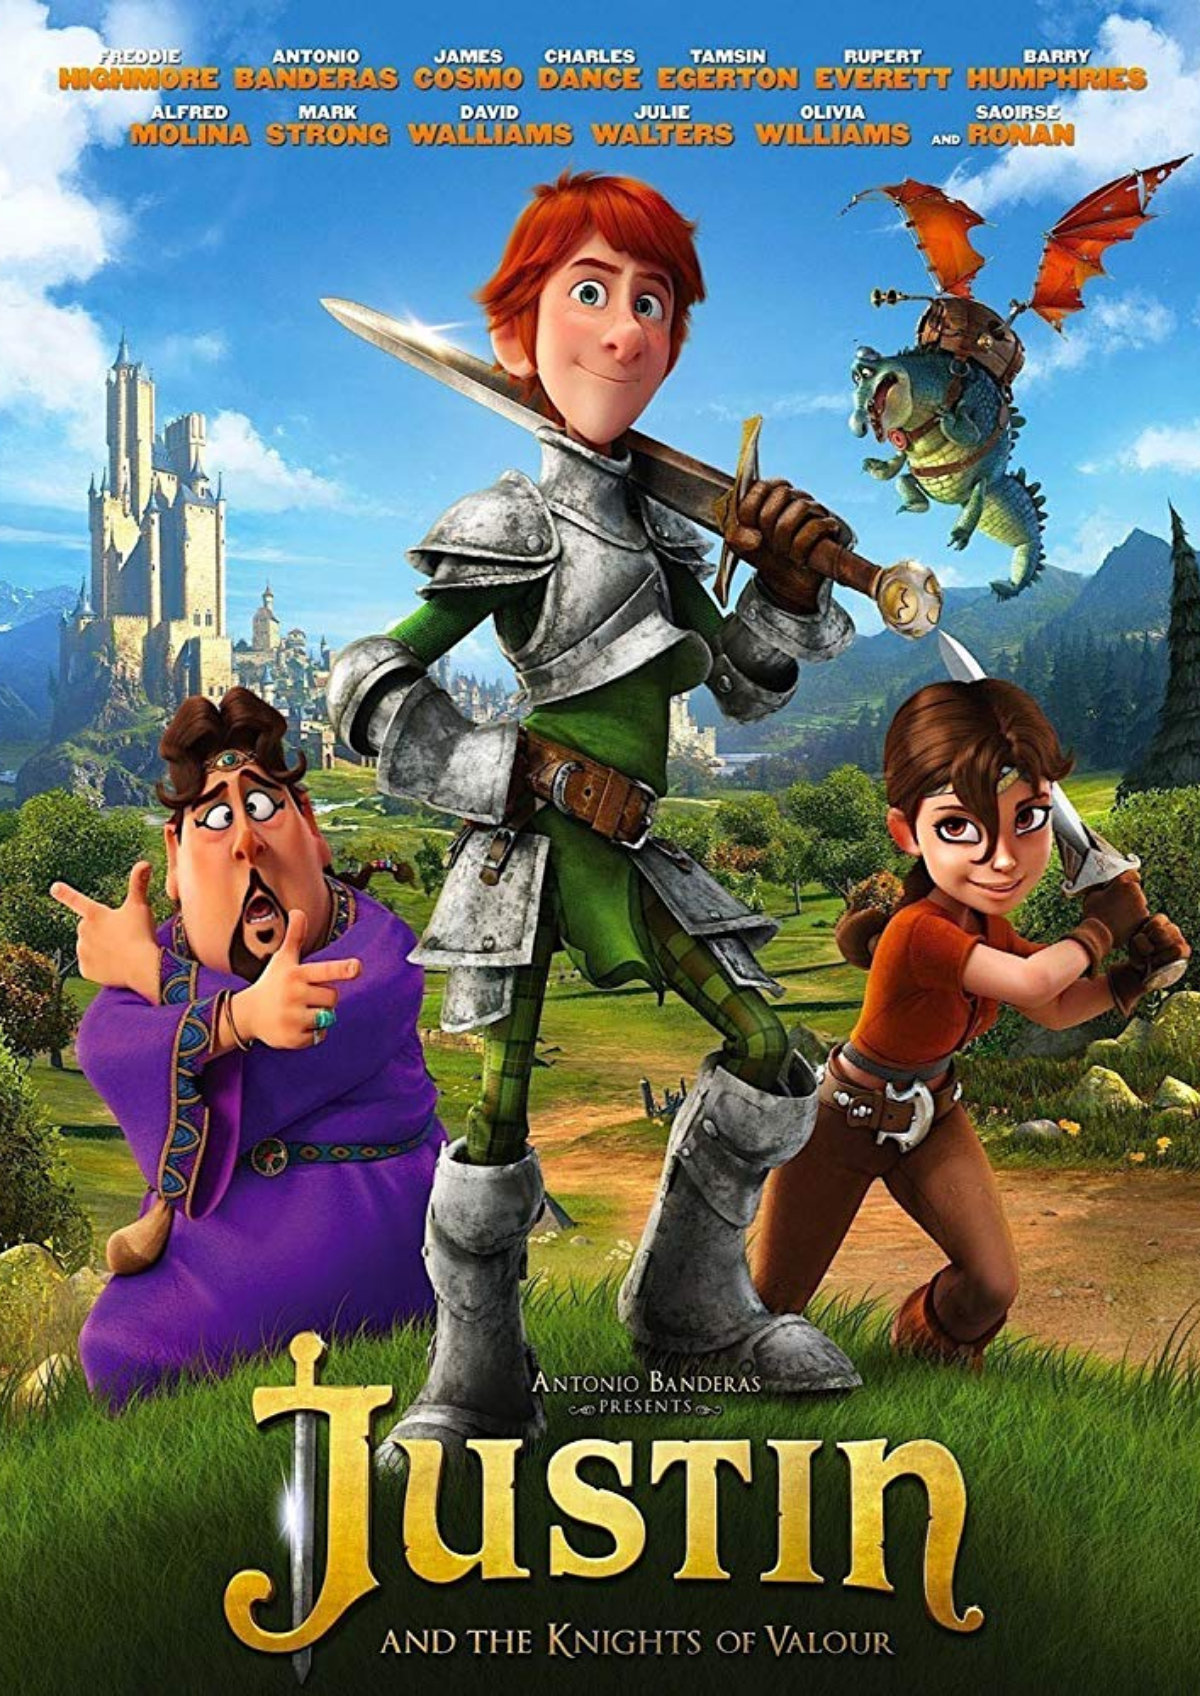 'Justin And The Knights Of Valour' movie poster